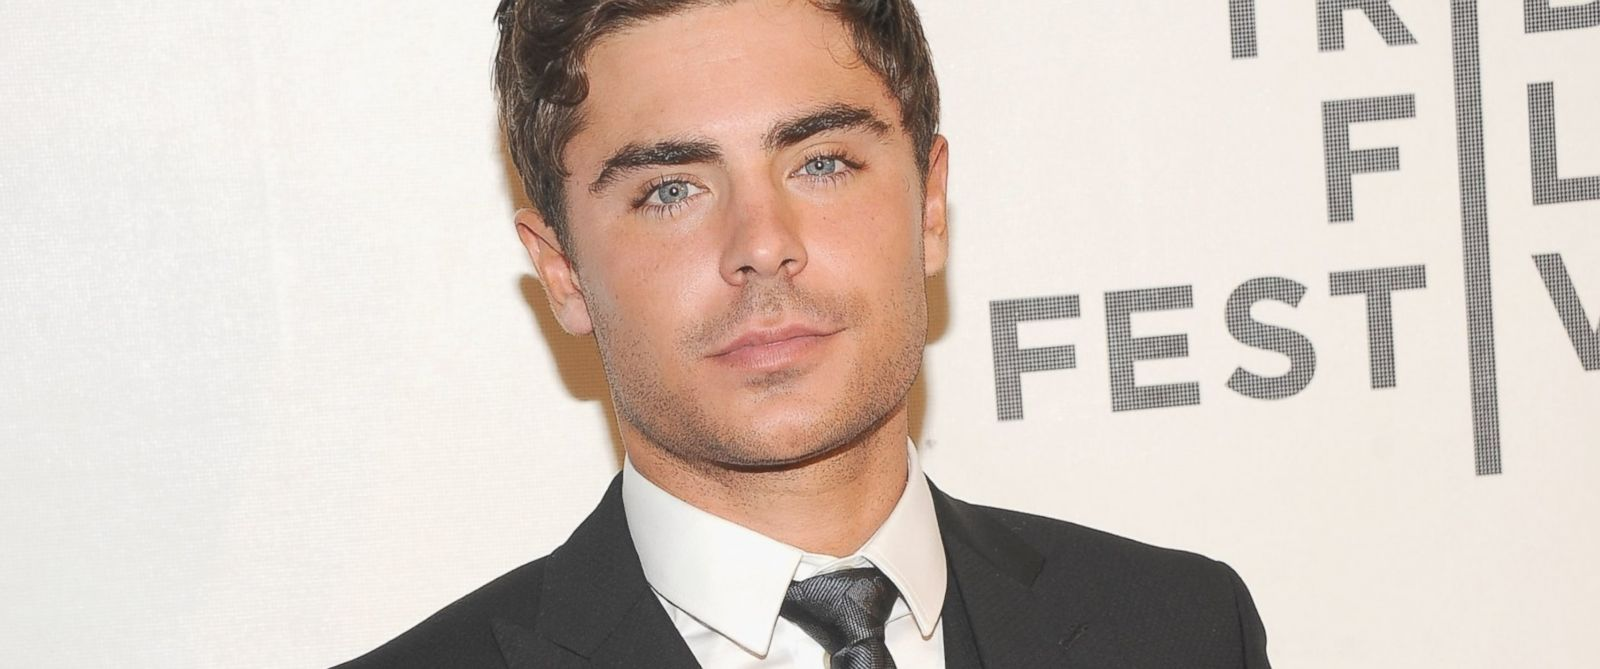 PHOTO: Actor Zac Efron attends the screening of At Any Price during the 2013 Tribeca Film Festival at BMCC Tribeca PAC on April 19, 2013 in New York City.